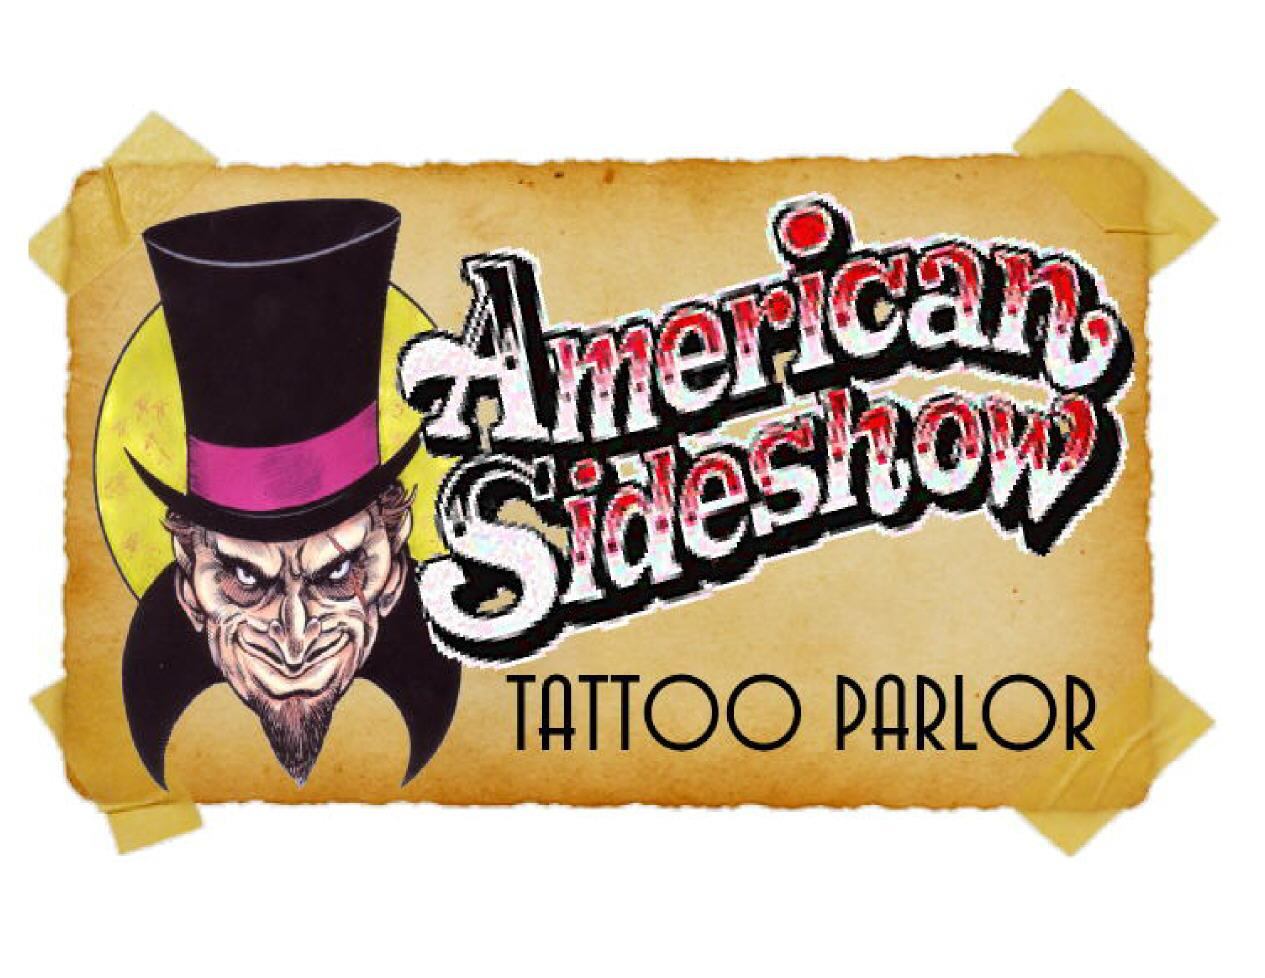 6339 old york road - American Sideshow Tattoo 6339 Olde York Rd Parma Heights